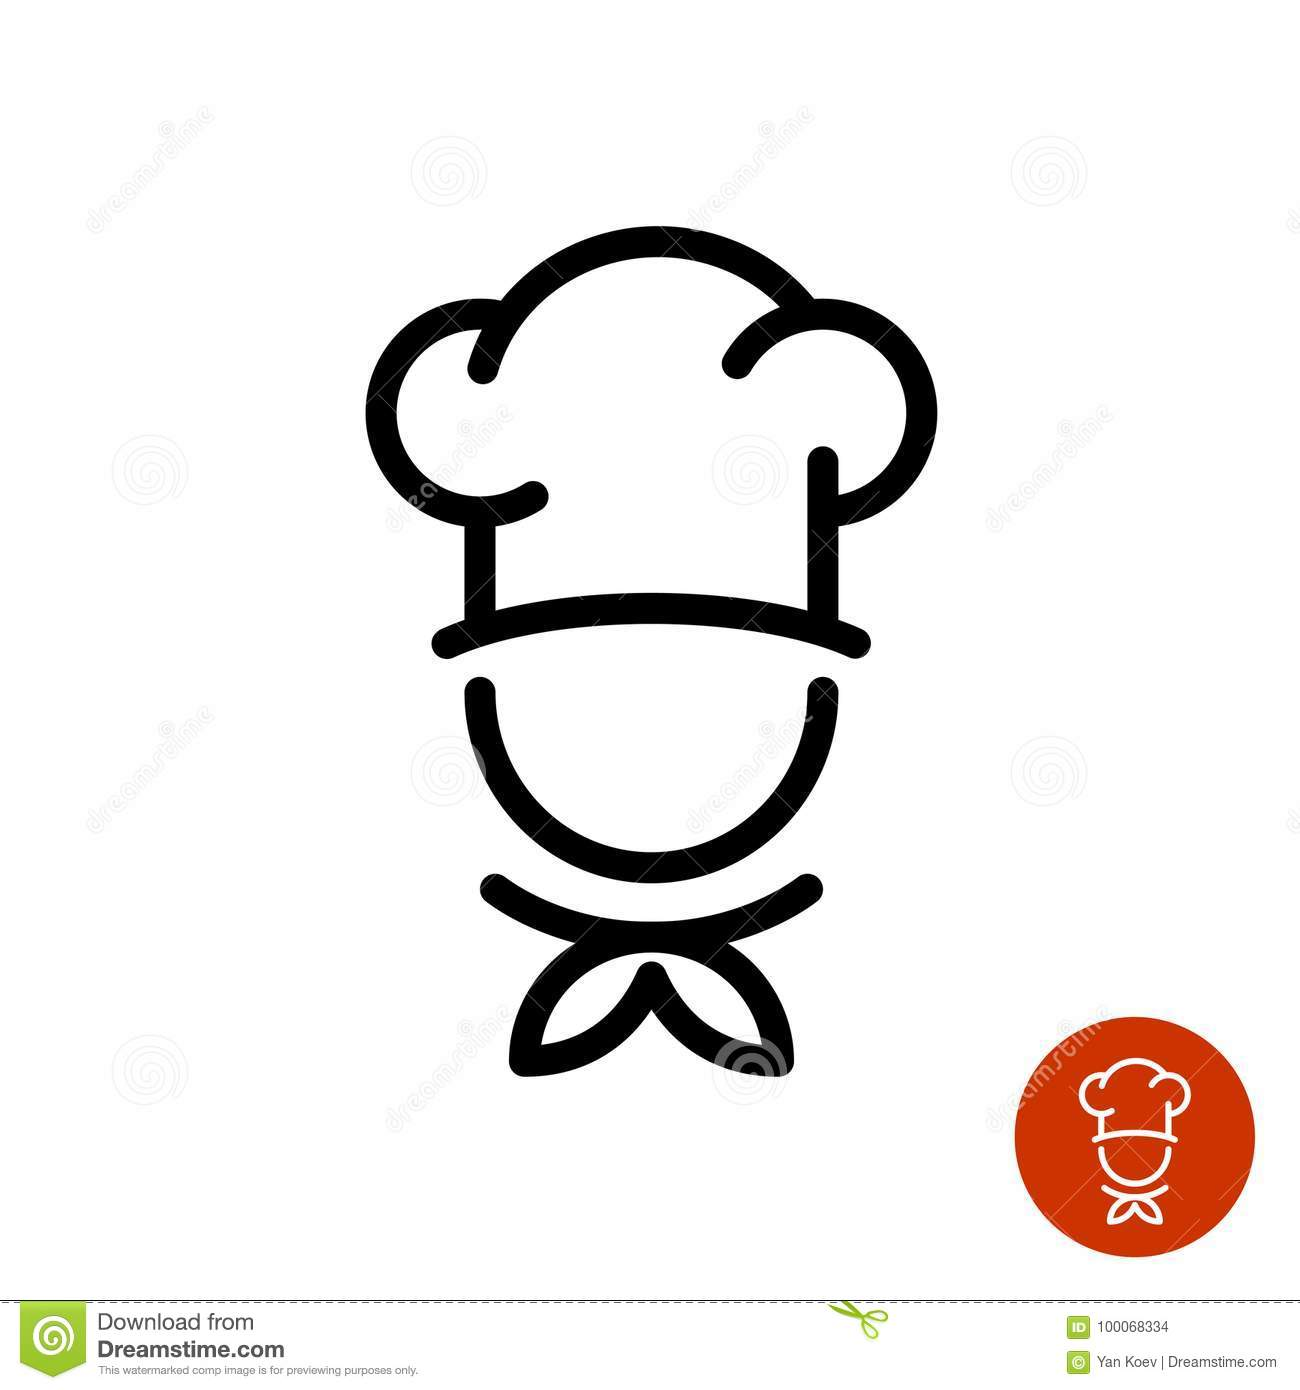 Chef Cooking Stock Illustrations – 48 ad1a84f775af